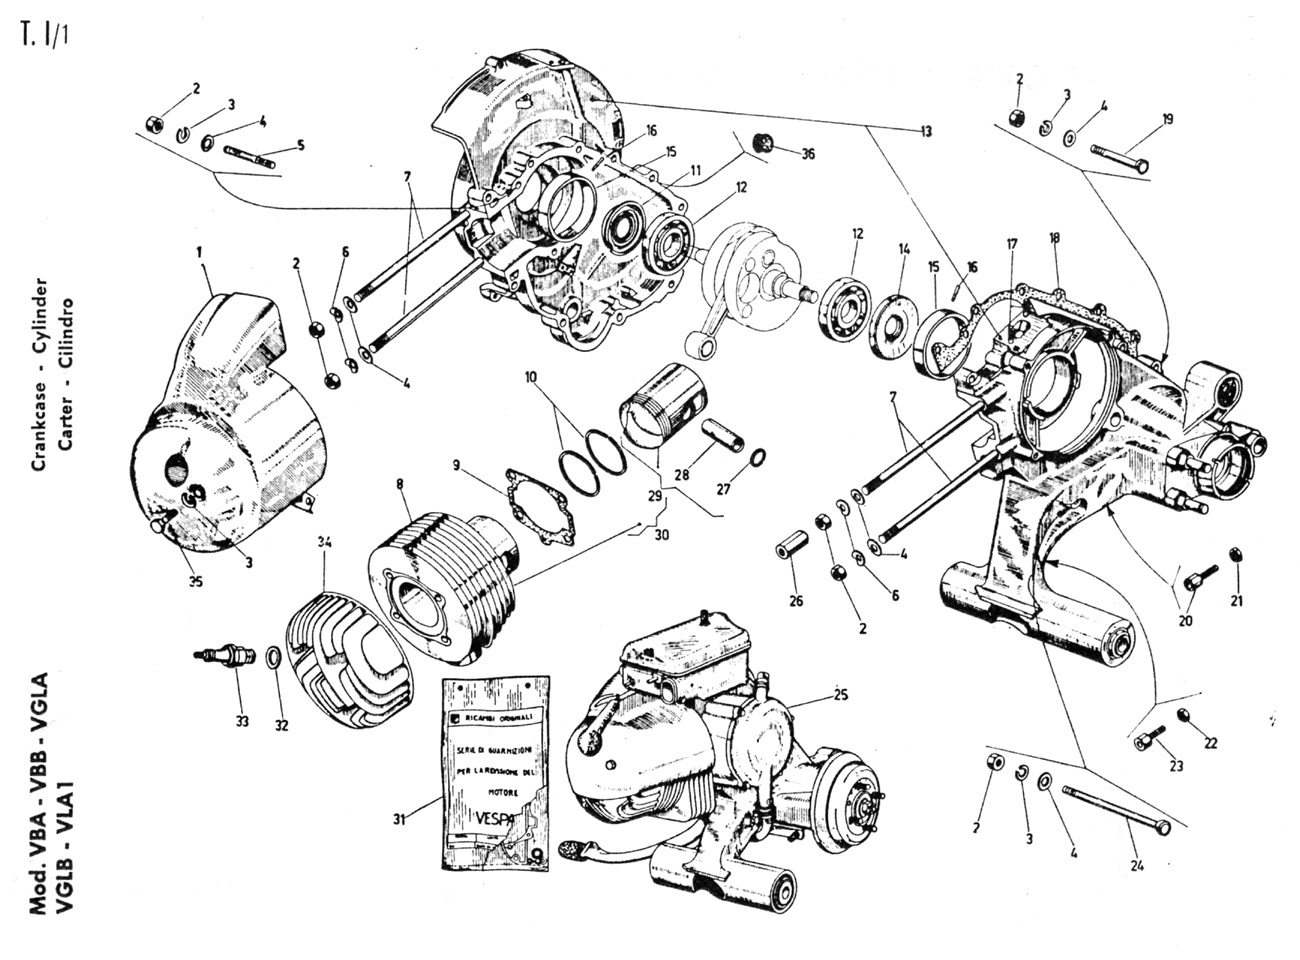 vintage vespa parts diagram vintage get free image about vespa engine parts diagram vespa super 150 engine diagram [ 1300 x 960 Pixel ]